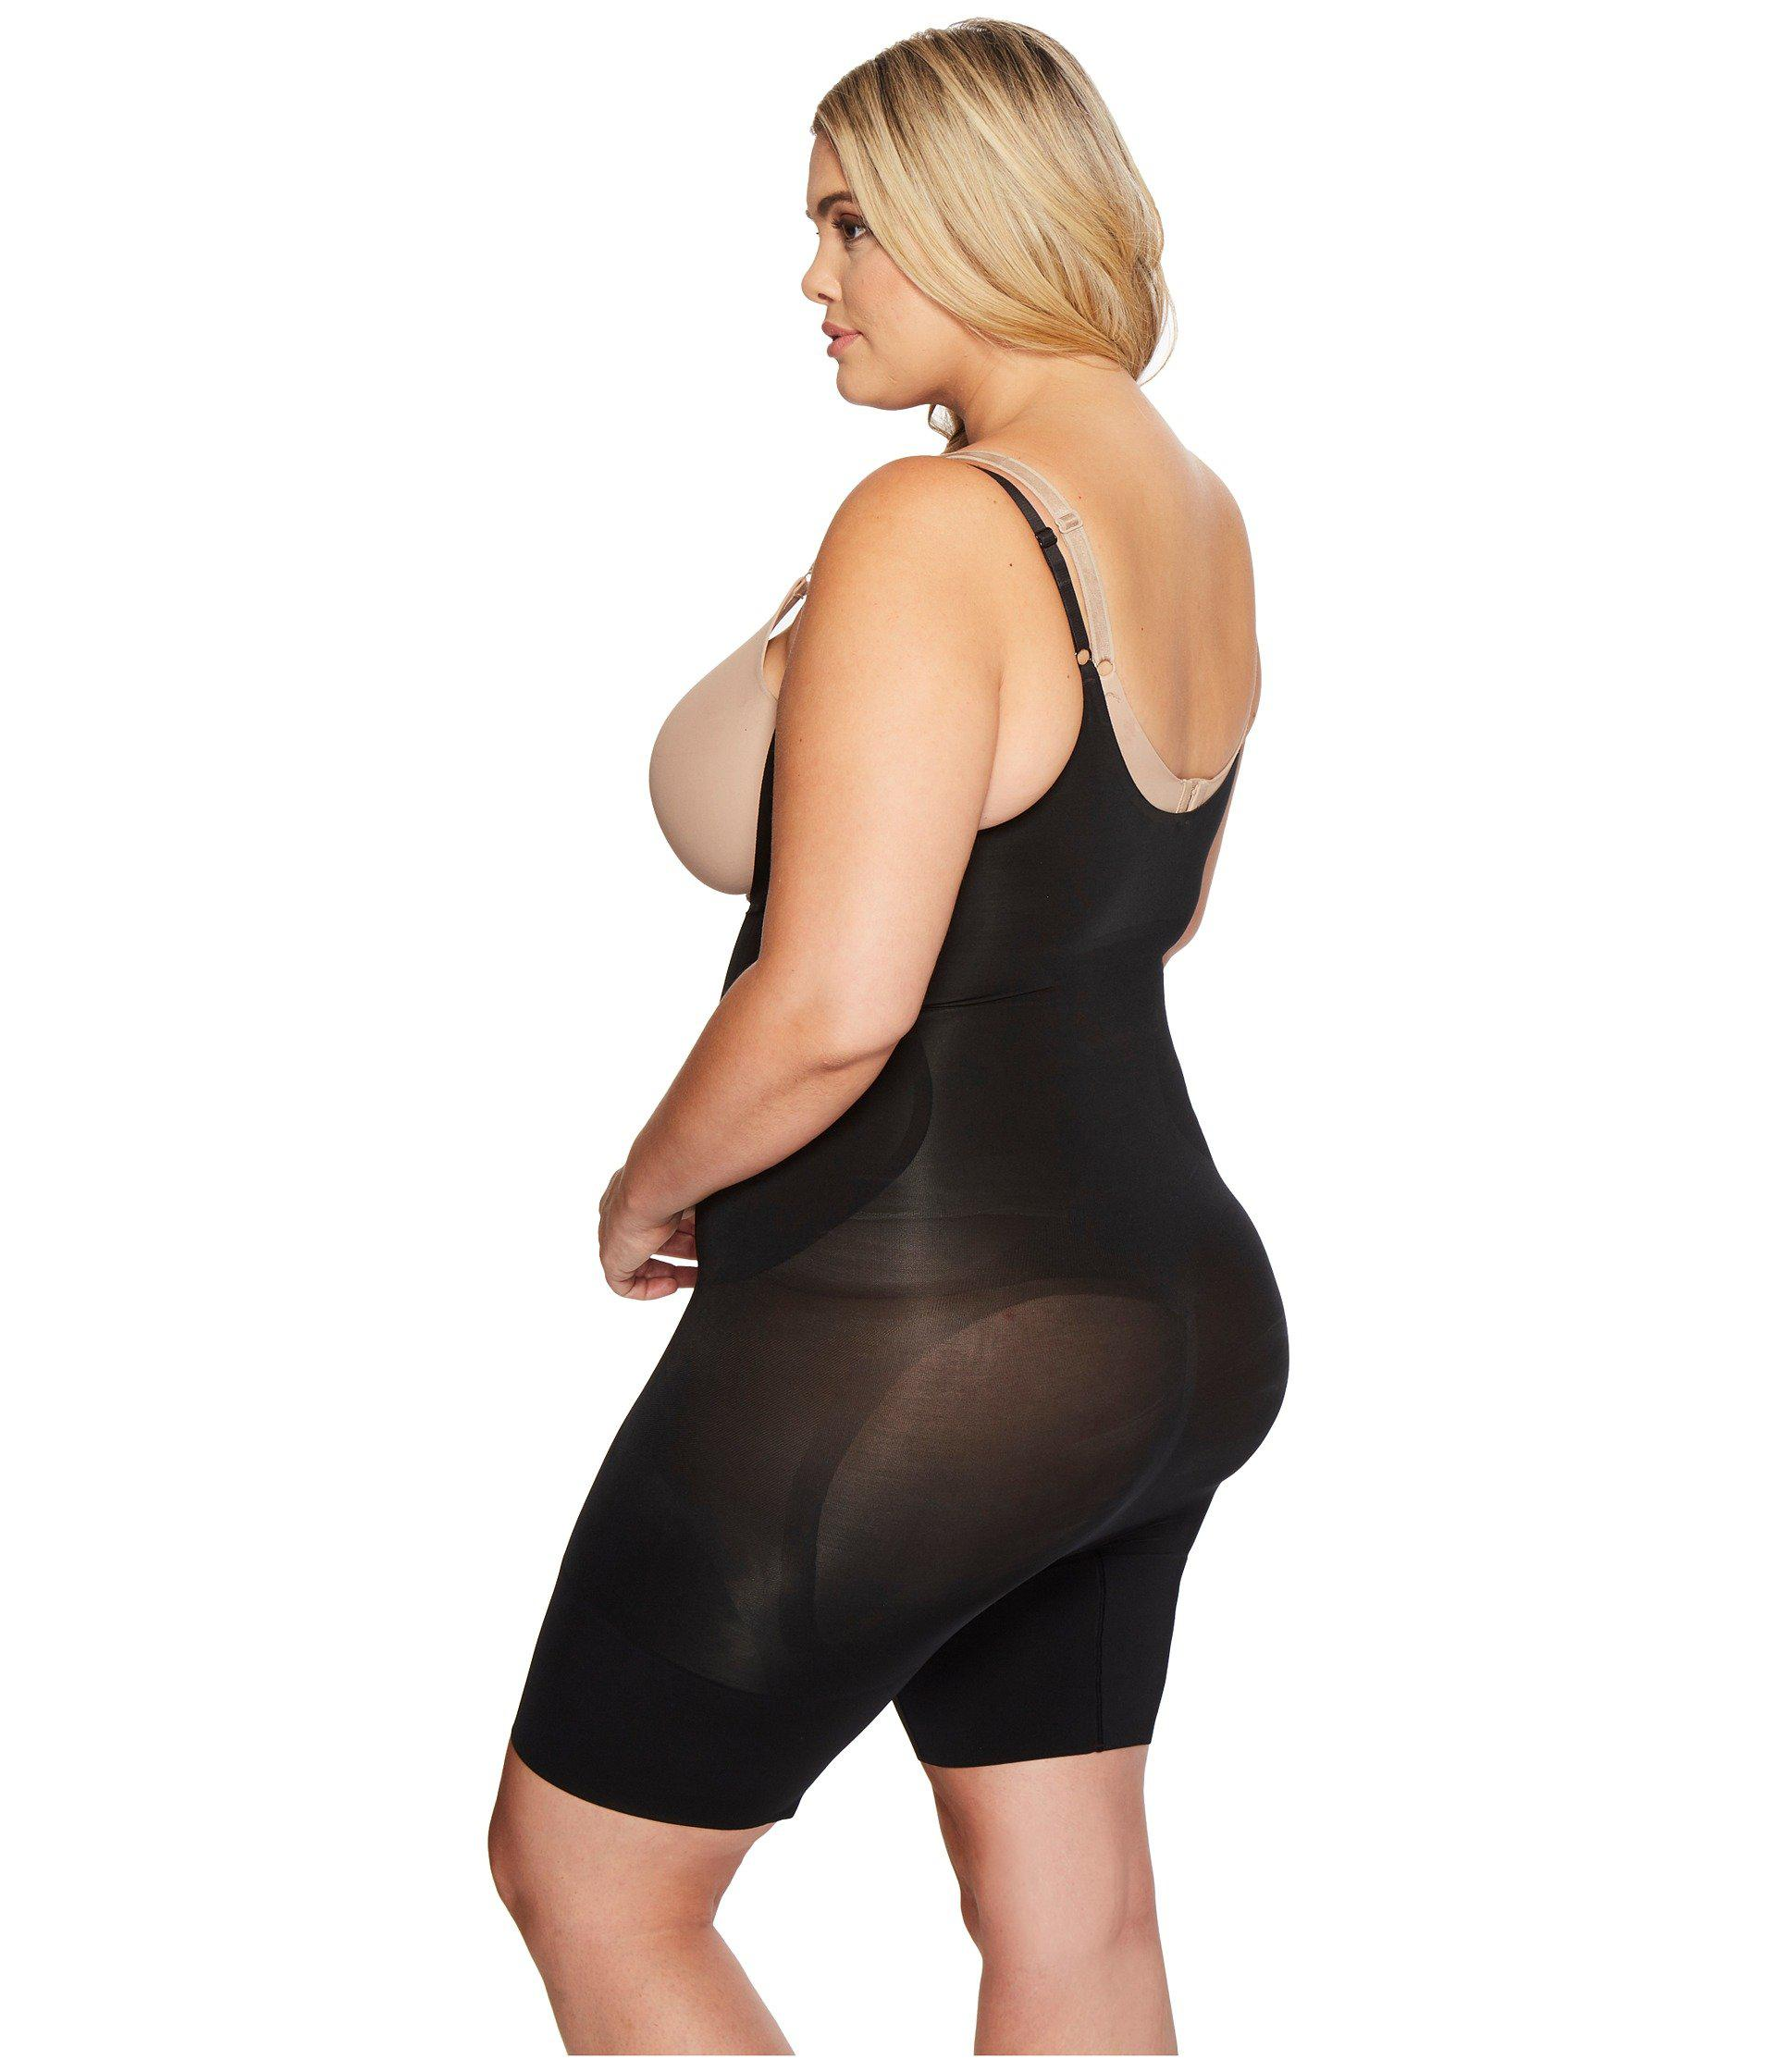 59a66f68aad3b Spanx - Black Plus Size Oncore Open-bust Mid-thigh Bodysuit (soft Nude.  View fullscreen